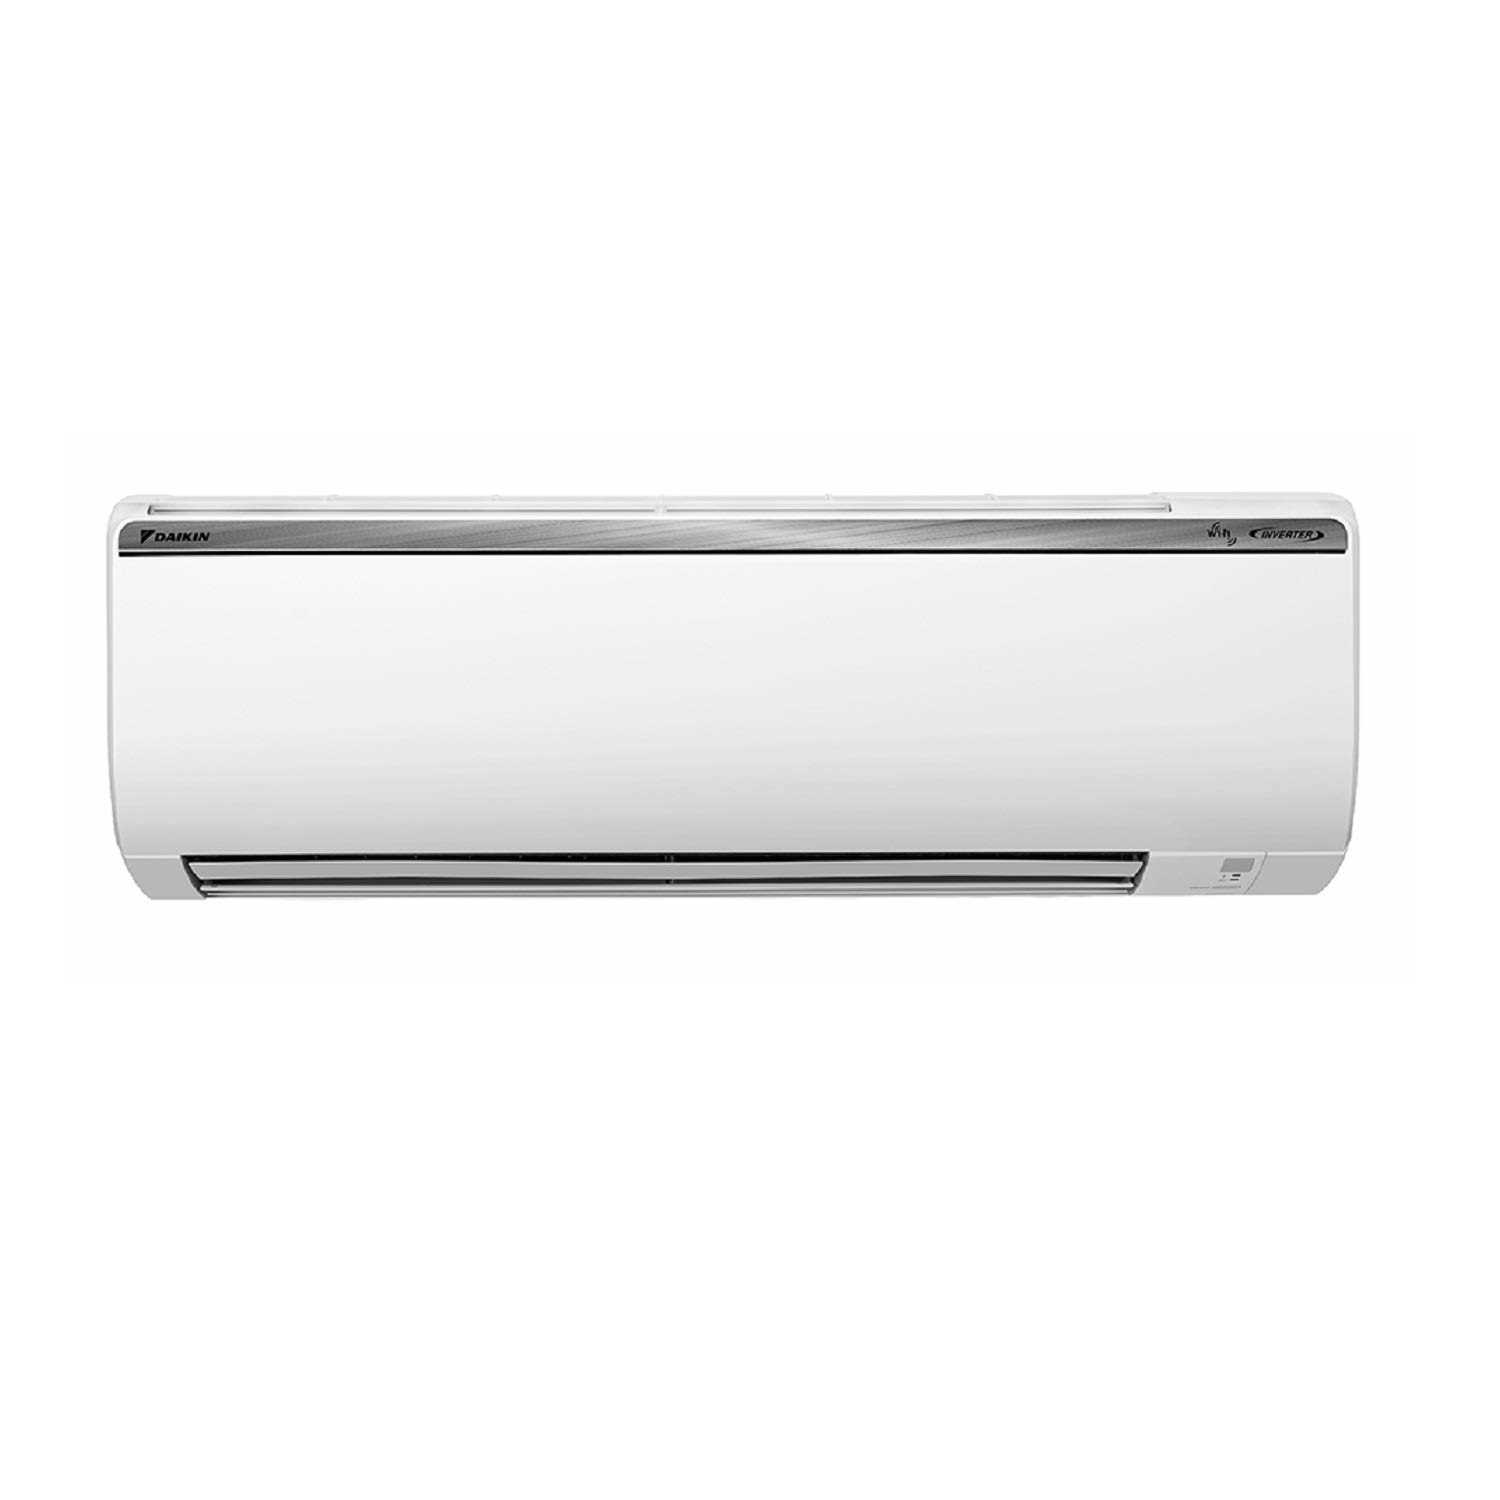 Daikin FTKR35TV 1 Ton 5 Star Inverter Split AC